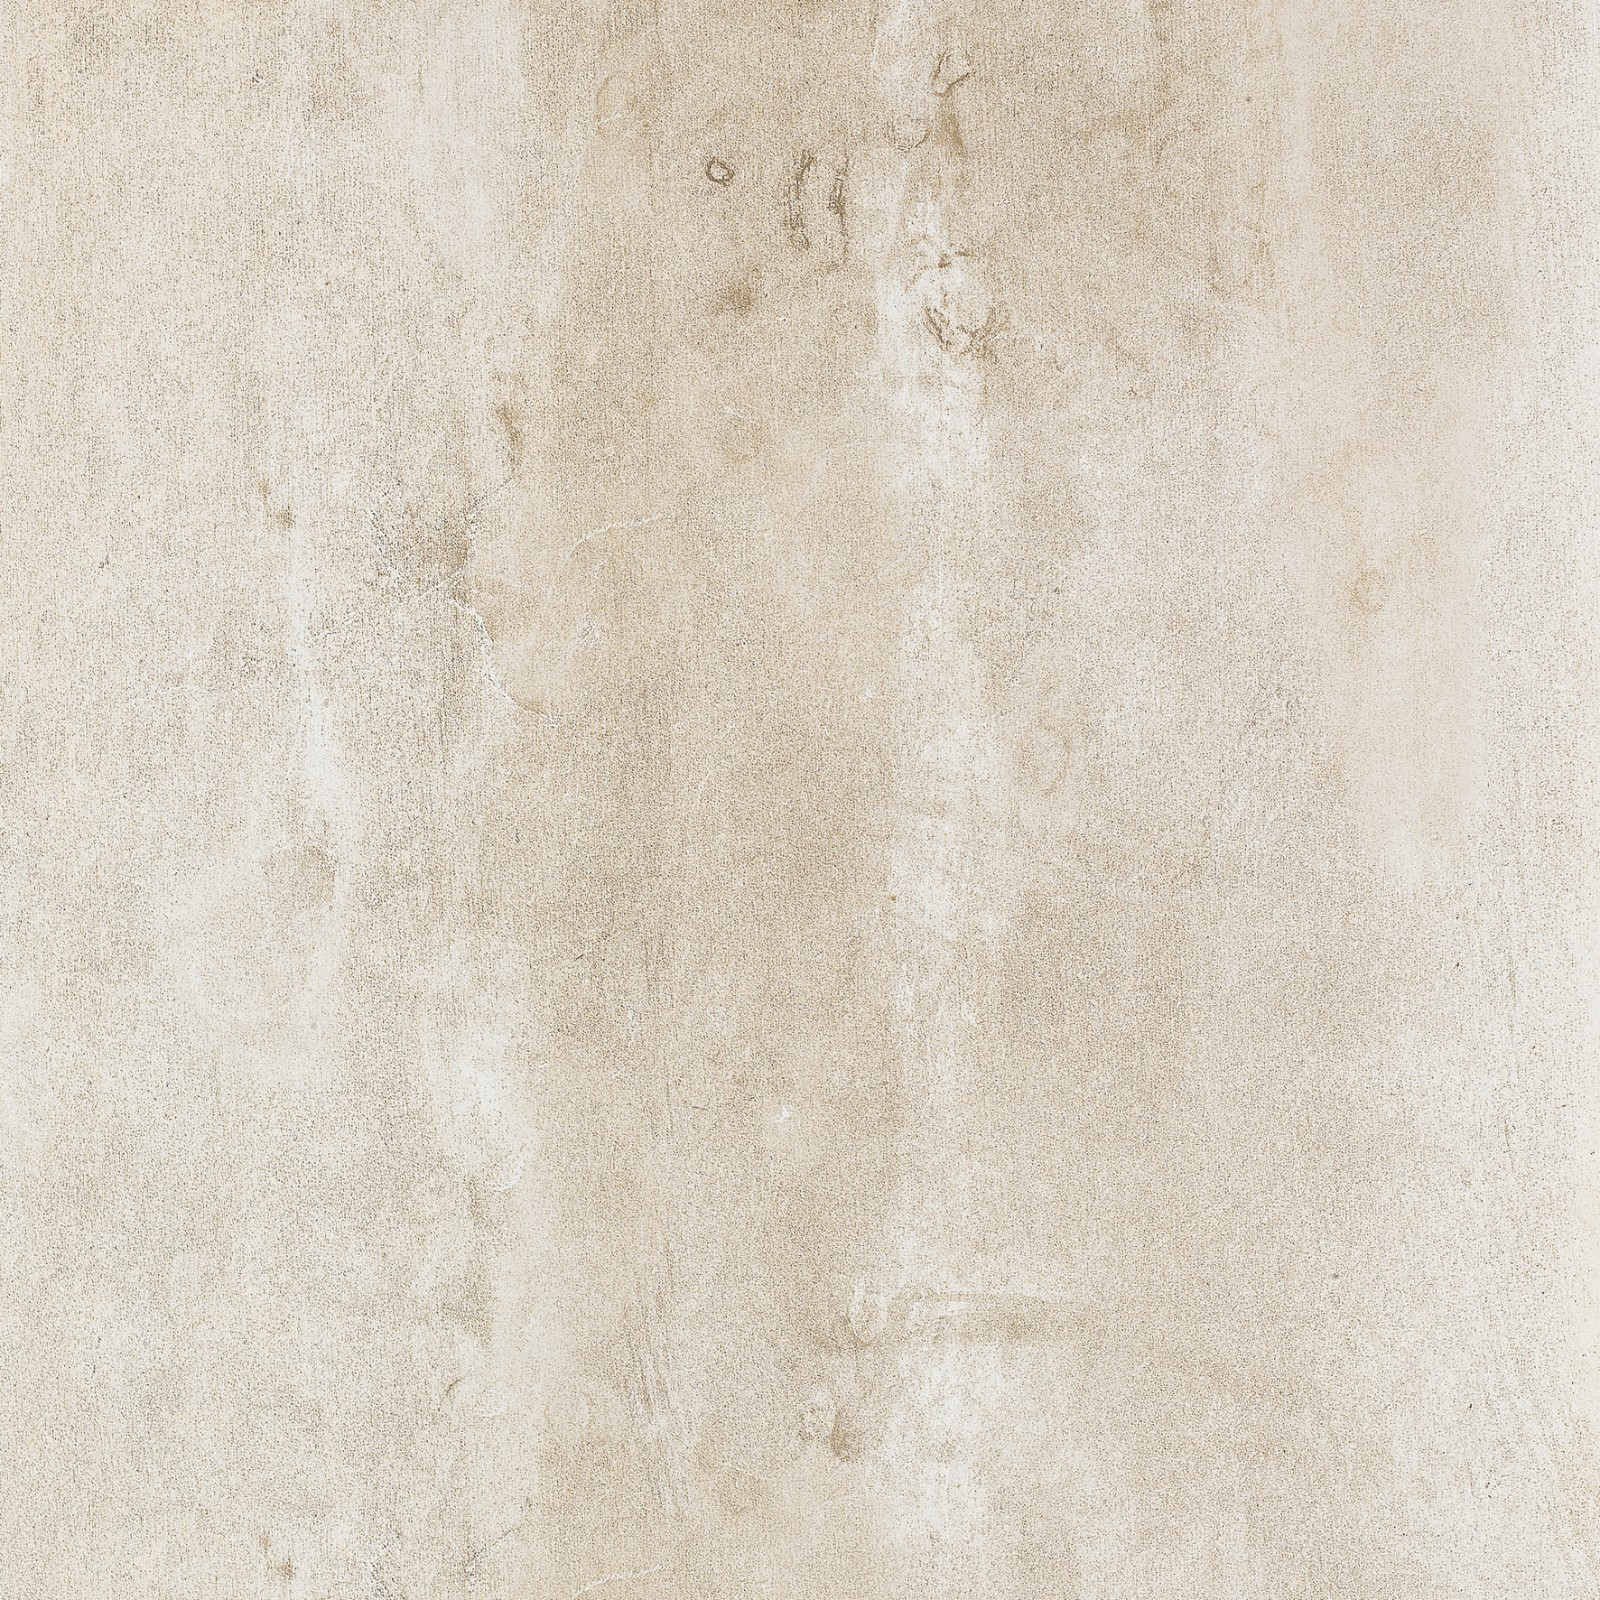 Overland strong cement tiles india tiles for apartment-4